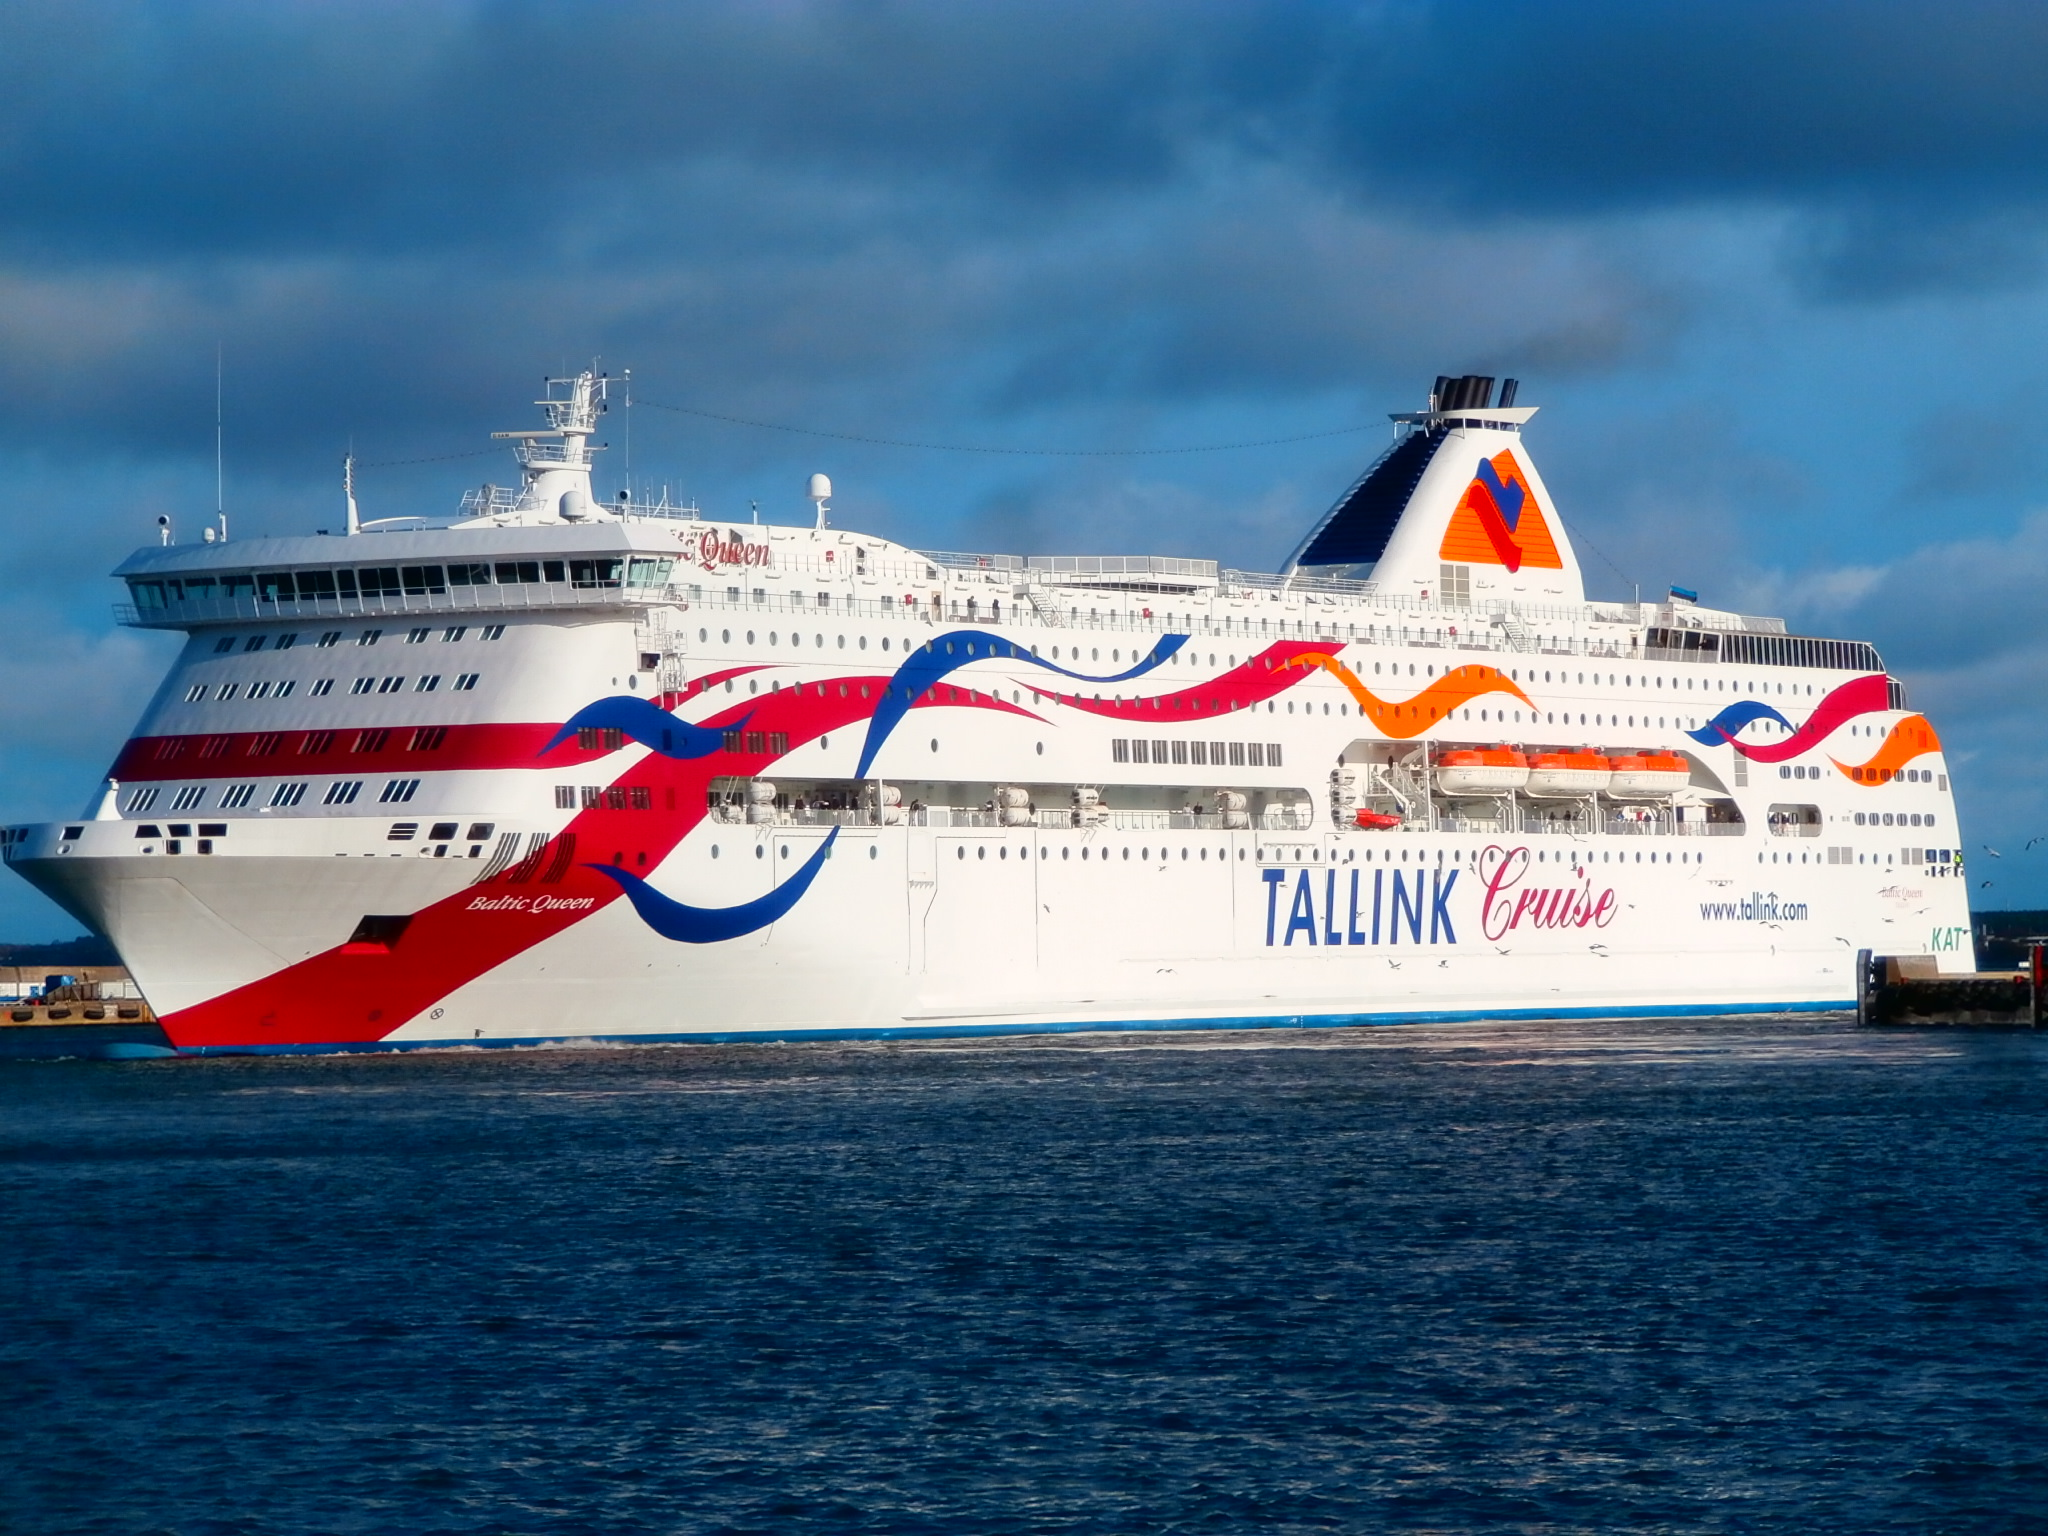 FileBaltic Queen Turning To Starboard Side In Port Of Tallinn - Port or starboard side of cruise ship